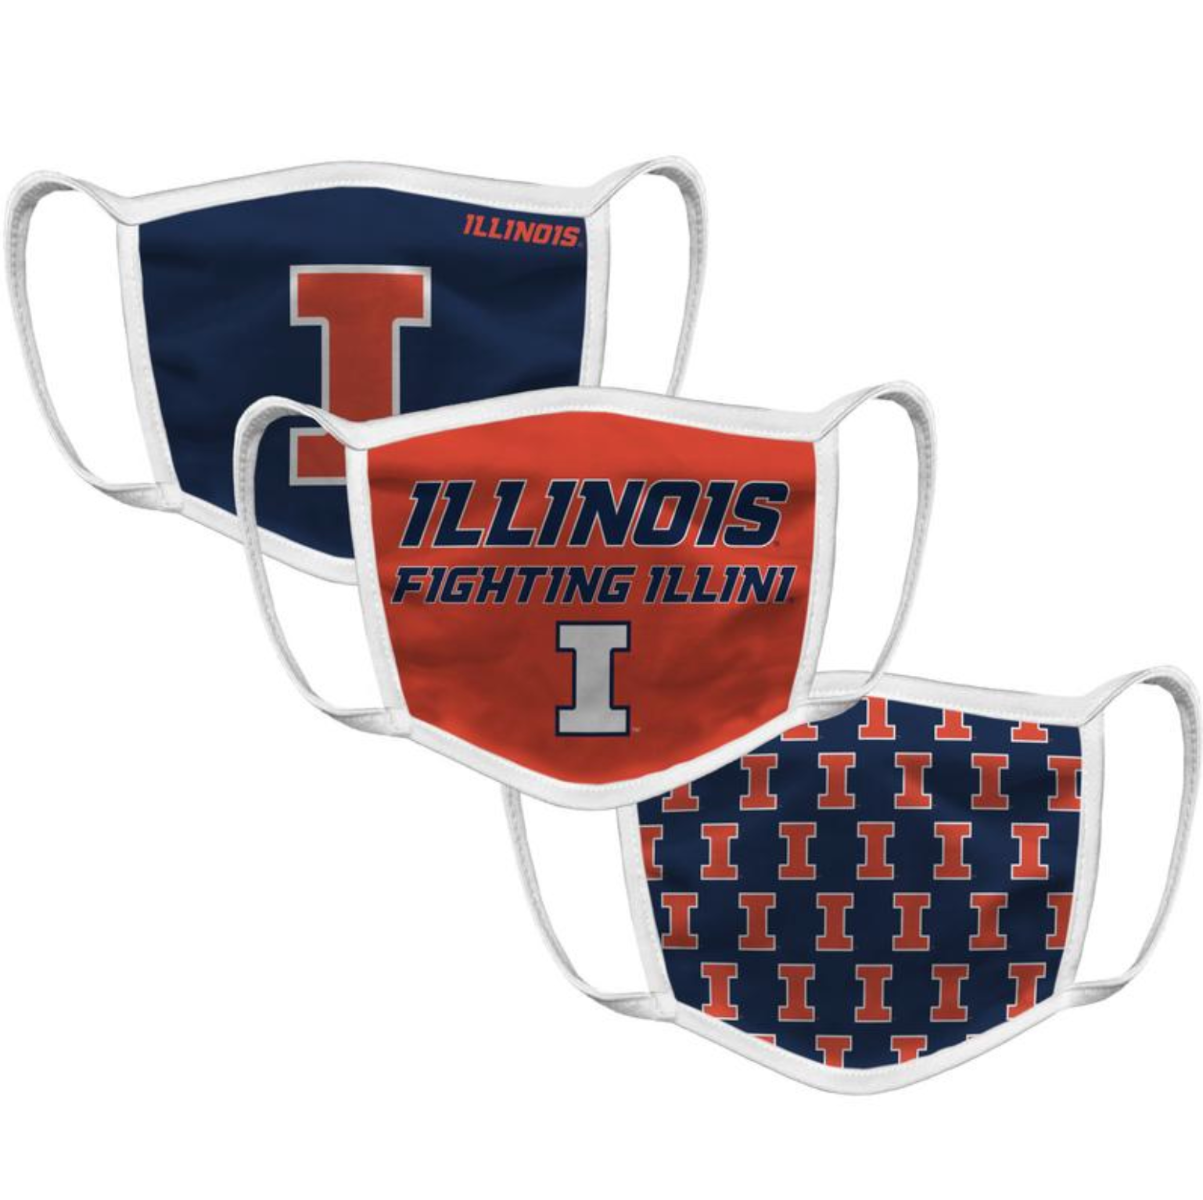 Illinois Face Mask (3 Pack)